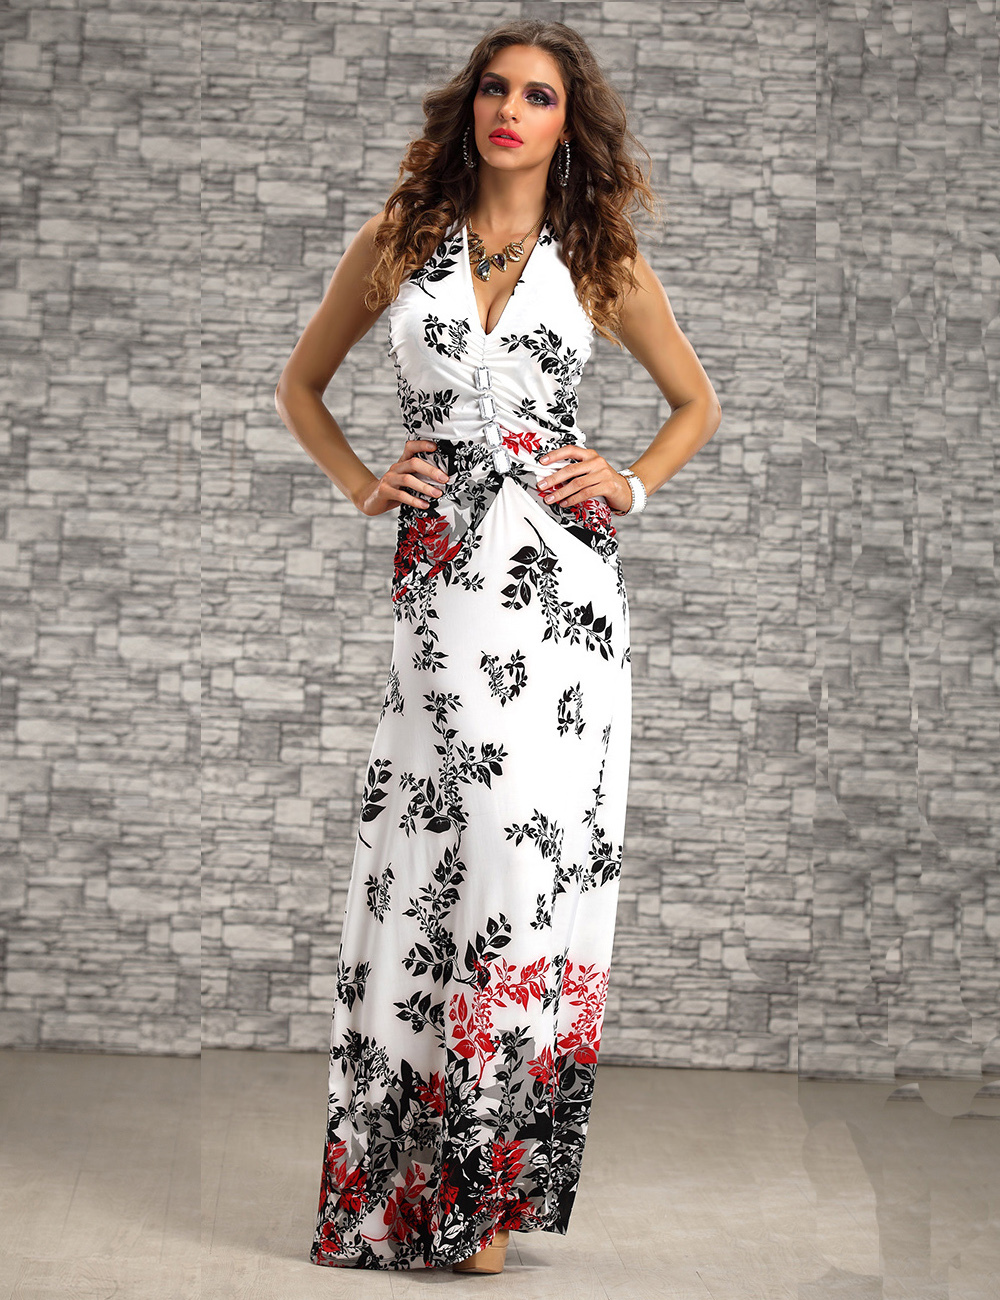 New Arrive Fashion Sleeveless Halter Neck Ladies Long Maxi Dress ...